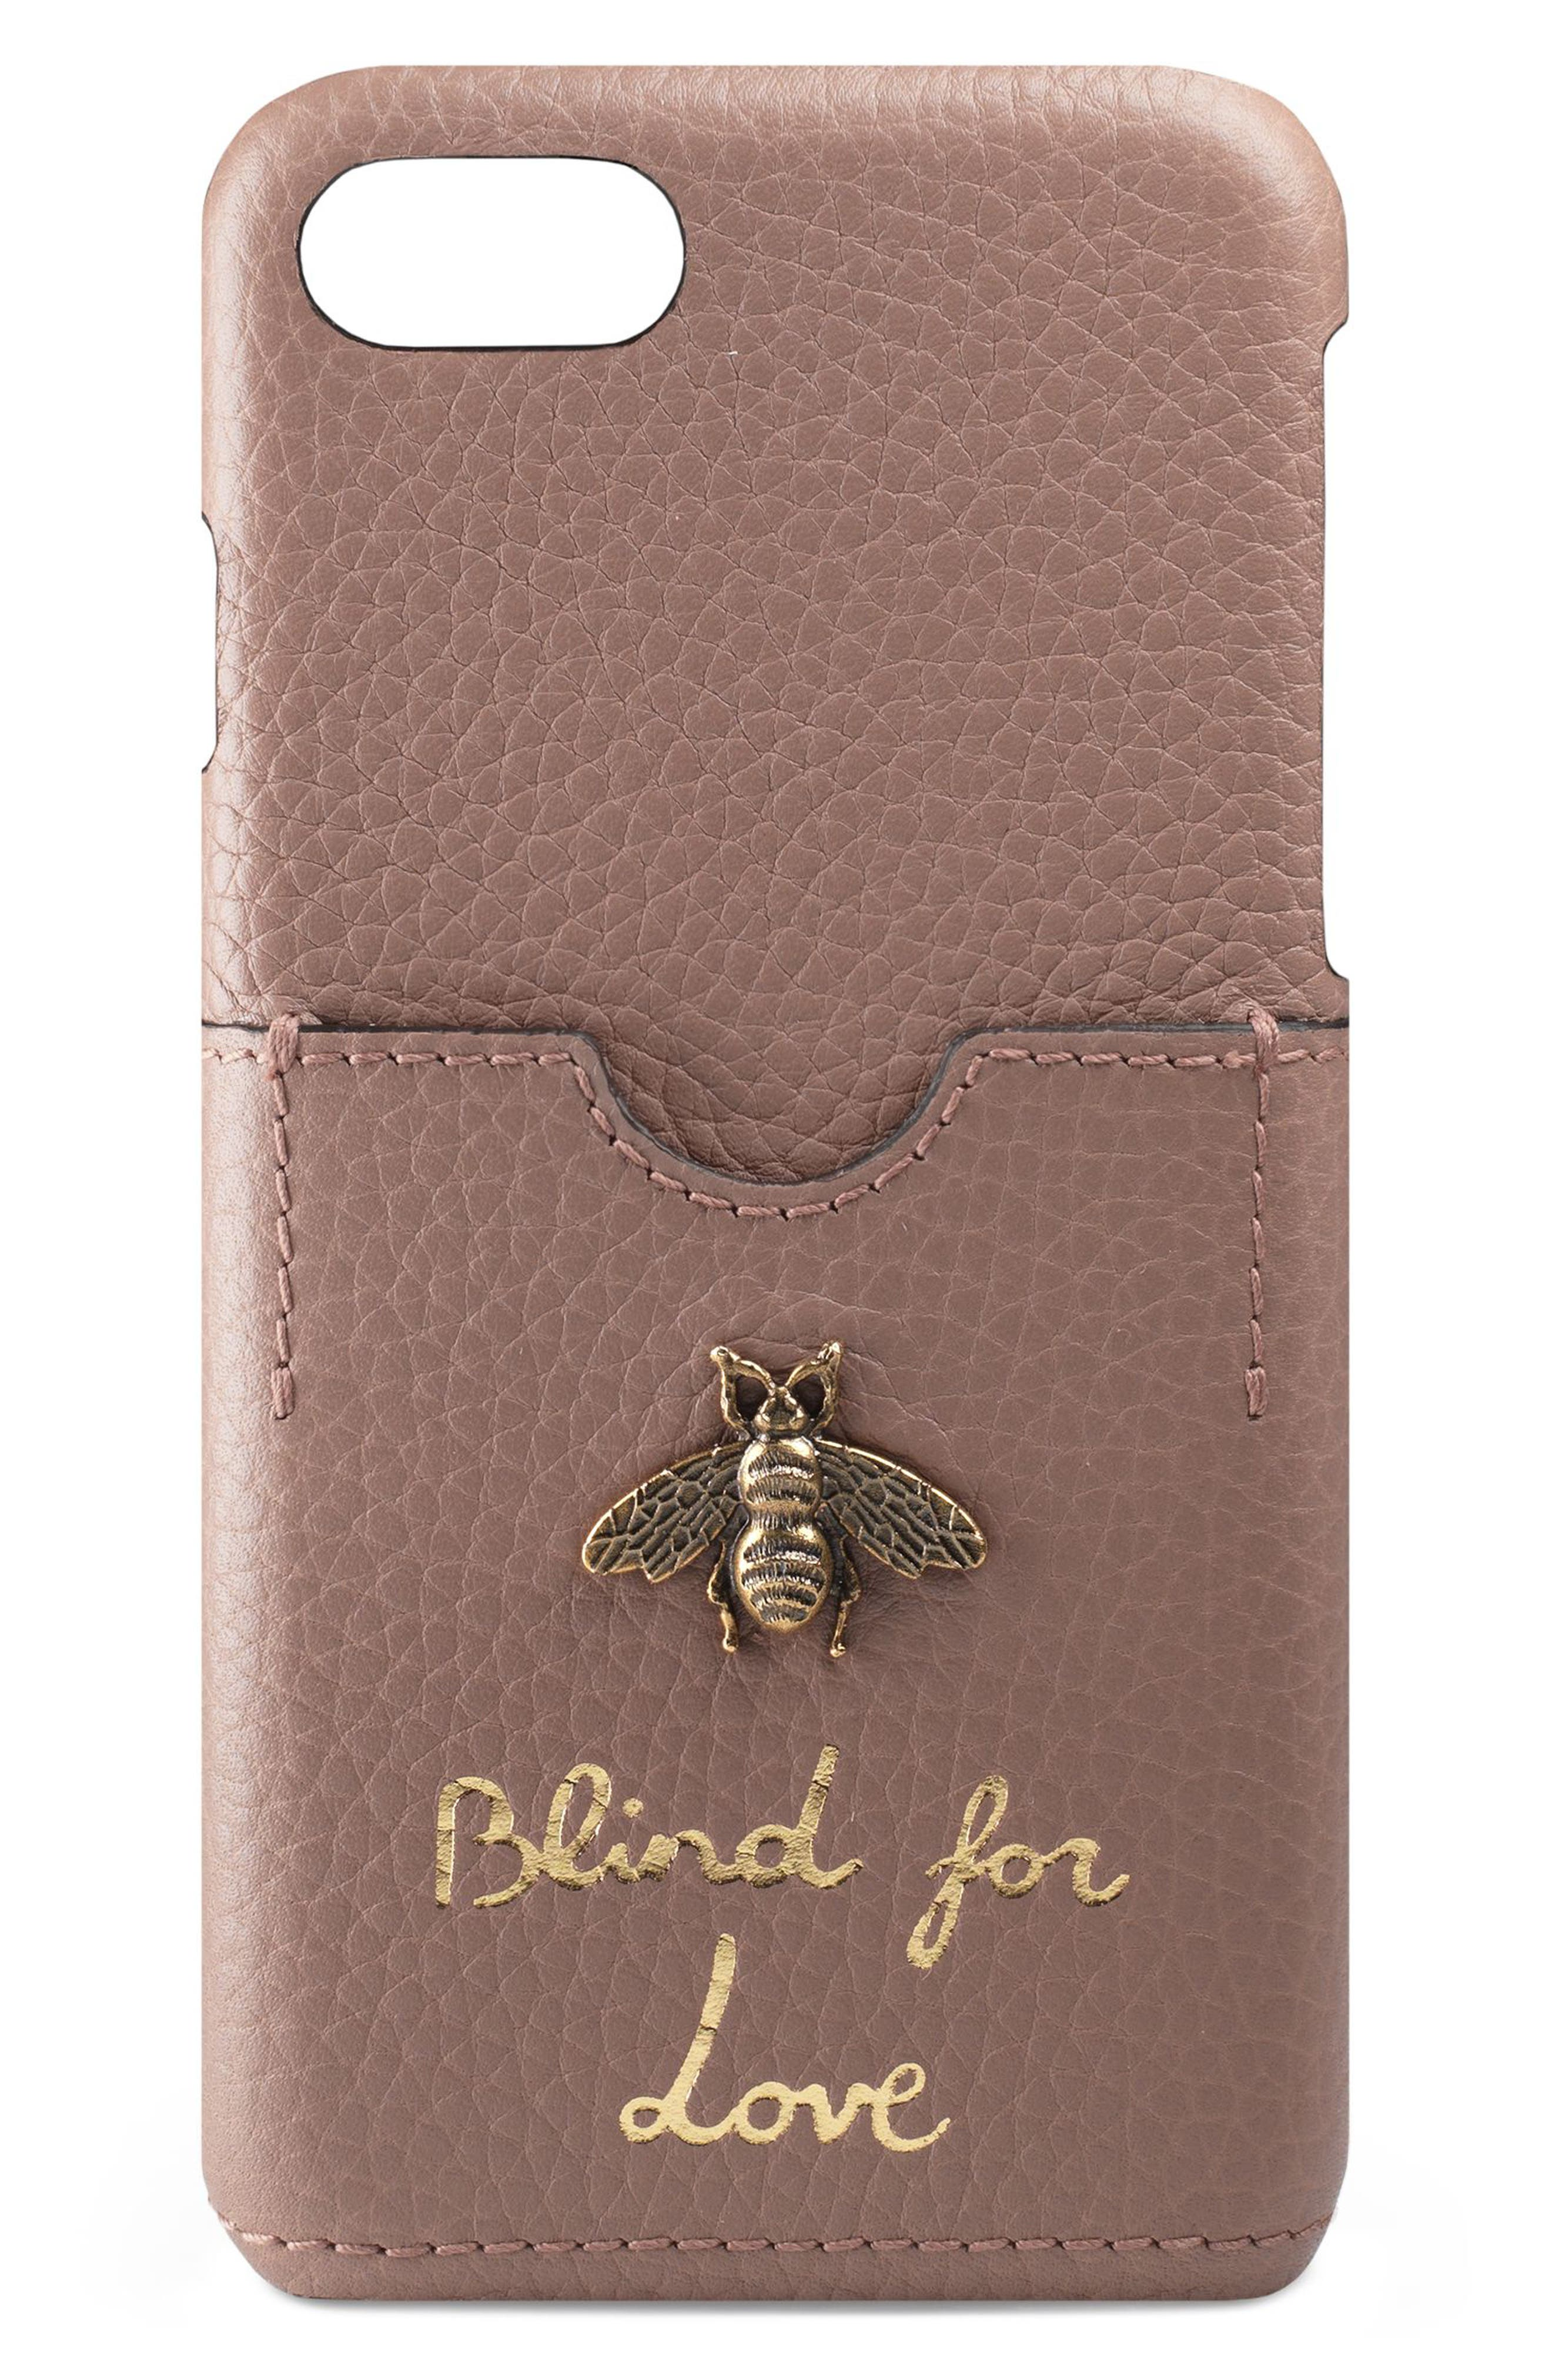 Main Image - Gucci Animalier Bee Leather iPhone 7 Case